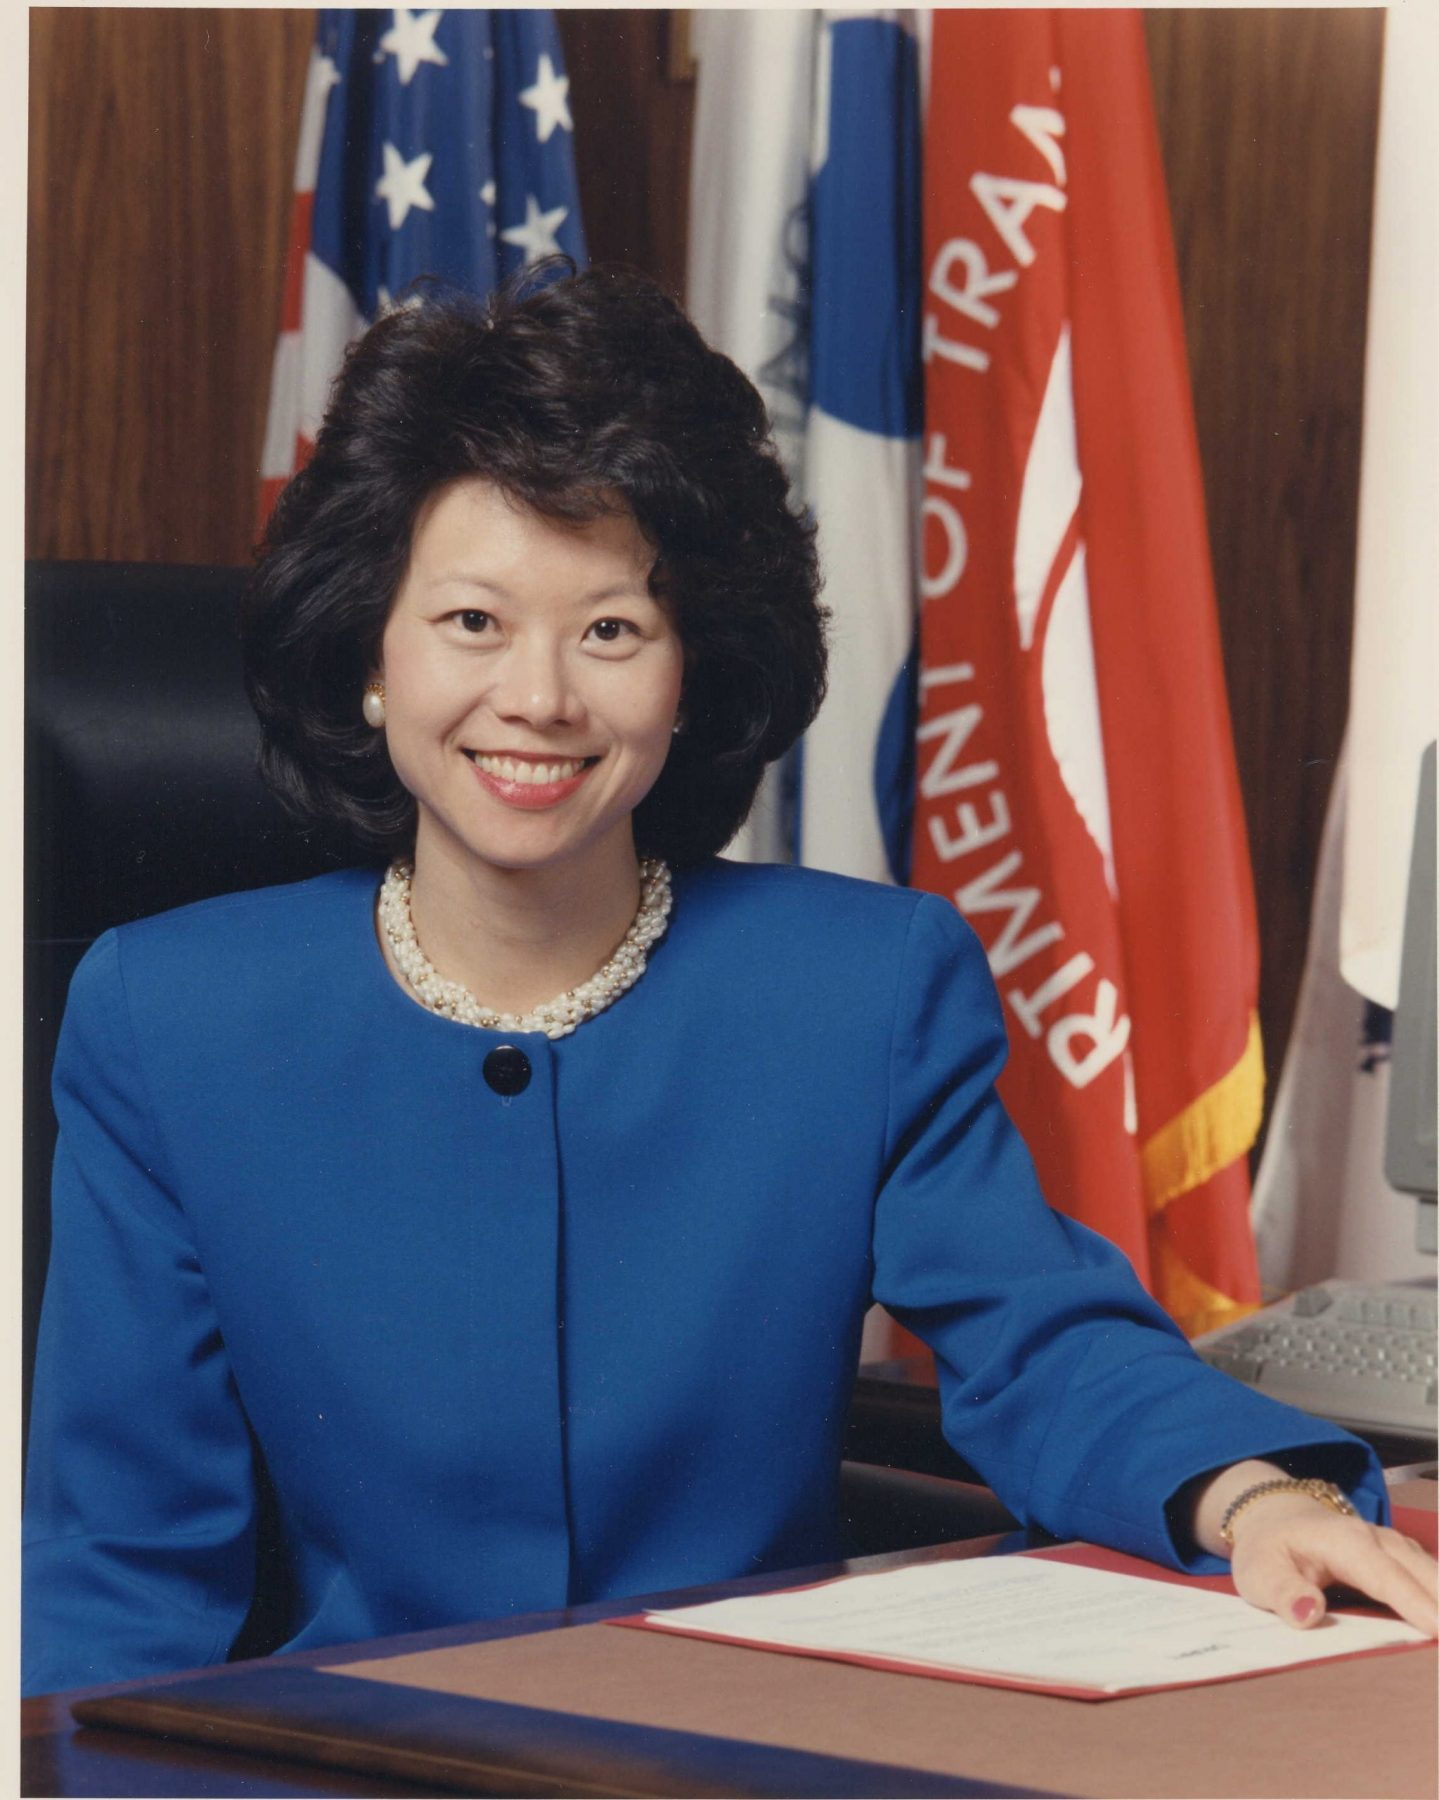 Official portrait of Elaine Chao as U.S. Deputy Secretary of Transportation